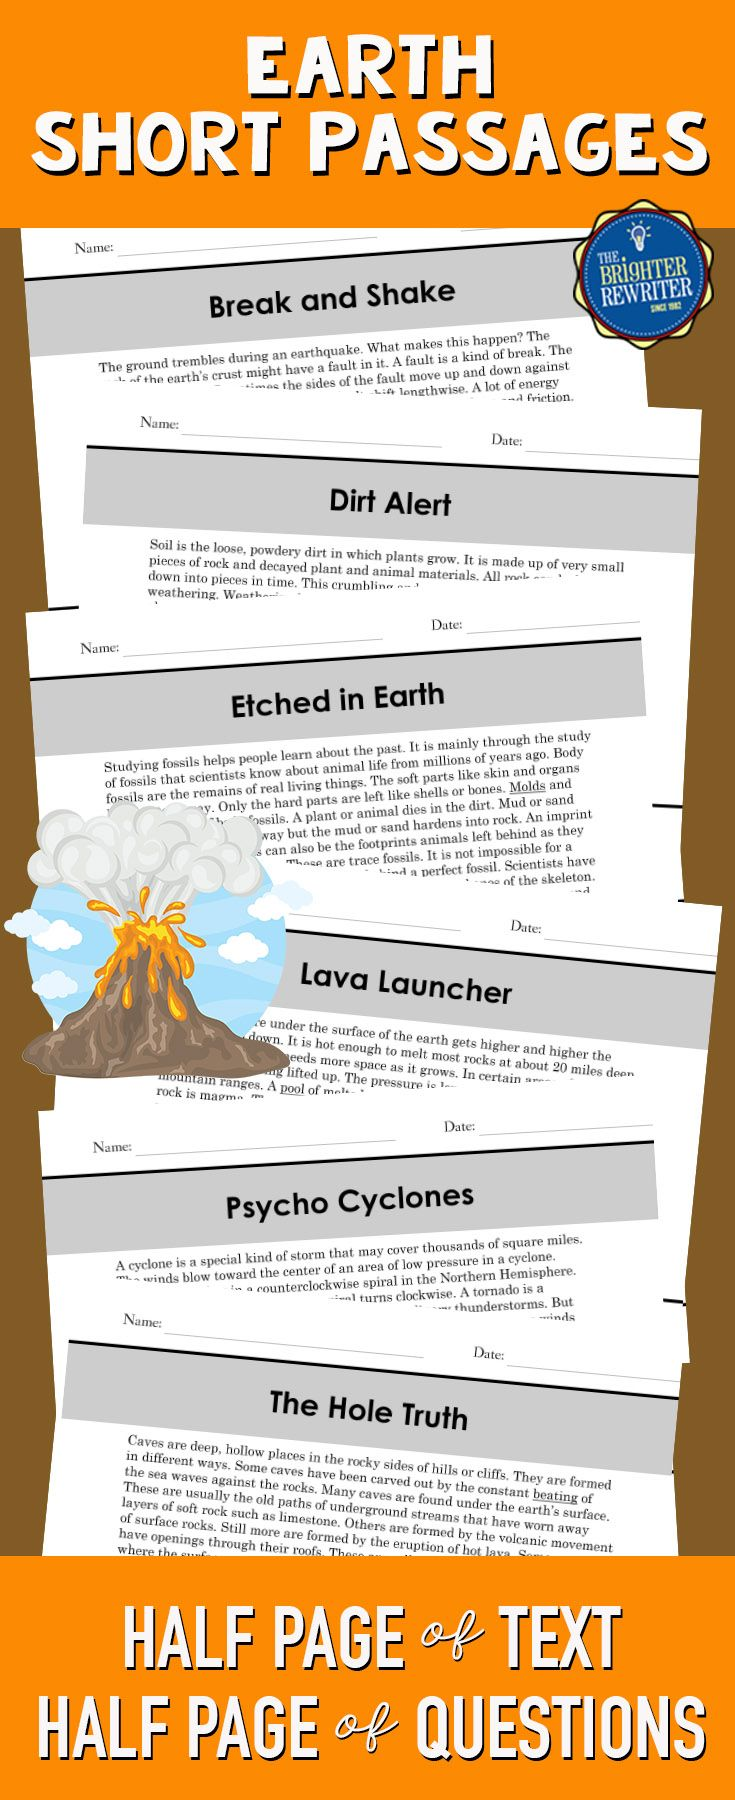 Build comprehension in 3rd-5th using these 6 nonfiction mini-passages, each featuring informational text and 4 multiple-choice comprehension questions on one page. The paragraphs are about earthquakes, weathering and soil, fossils, volcanoes, tornadoes, and caves. The questions include a variety of reading skills and are modeled after the types of questions on standardized reading tests.